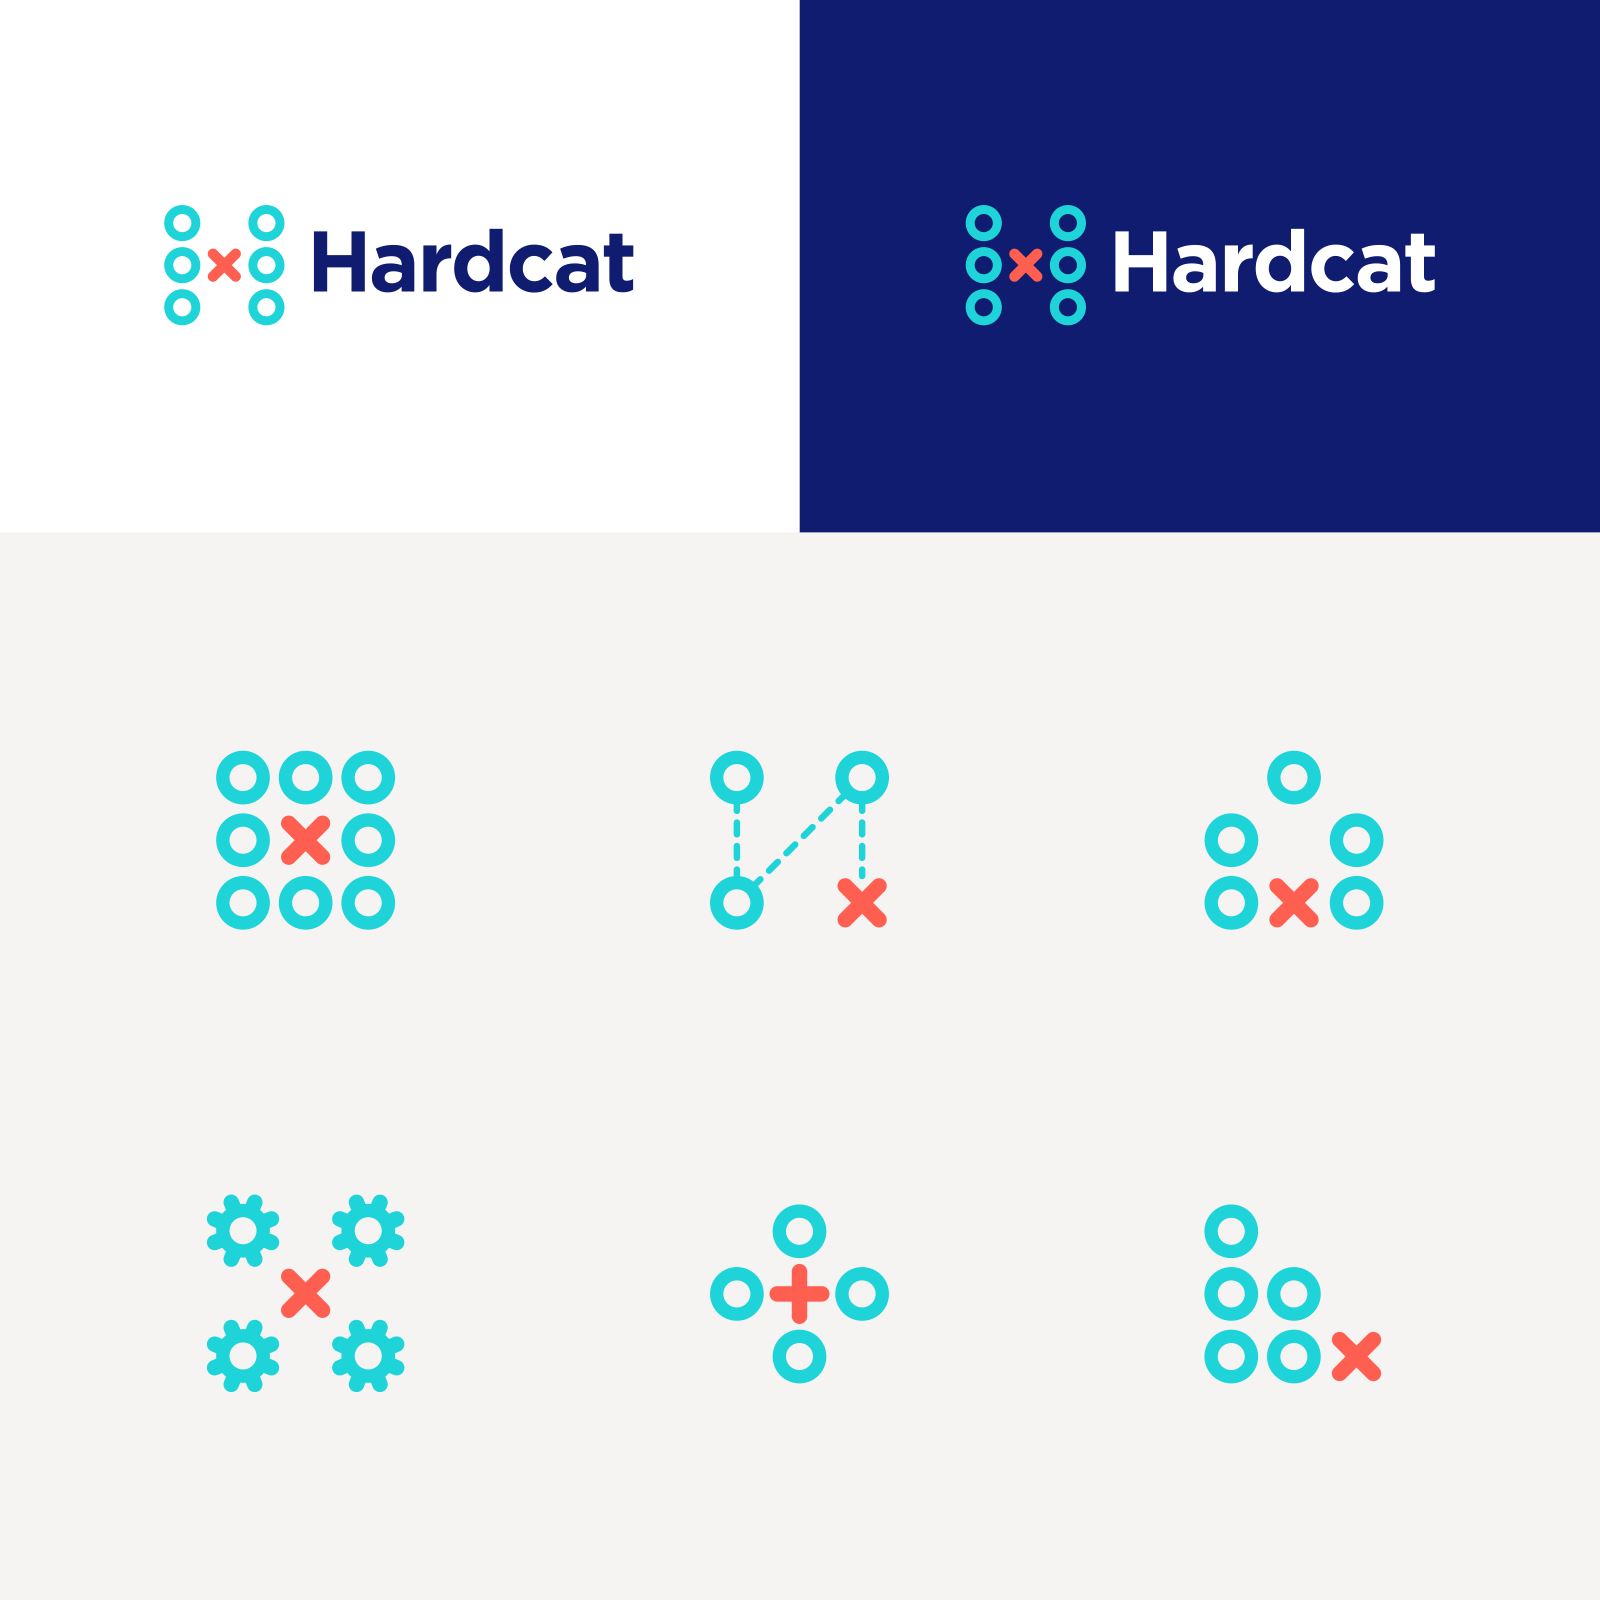 Hardcat brand positioning, visual identity and website